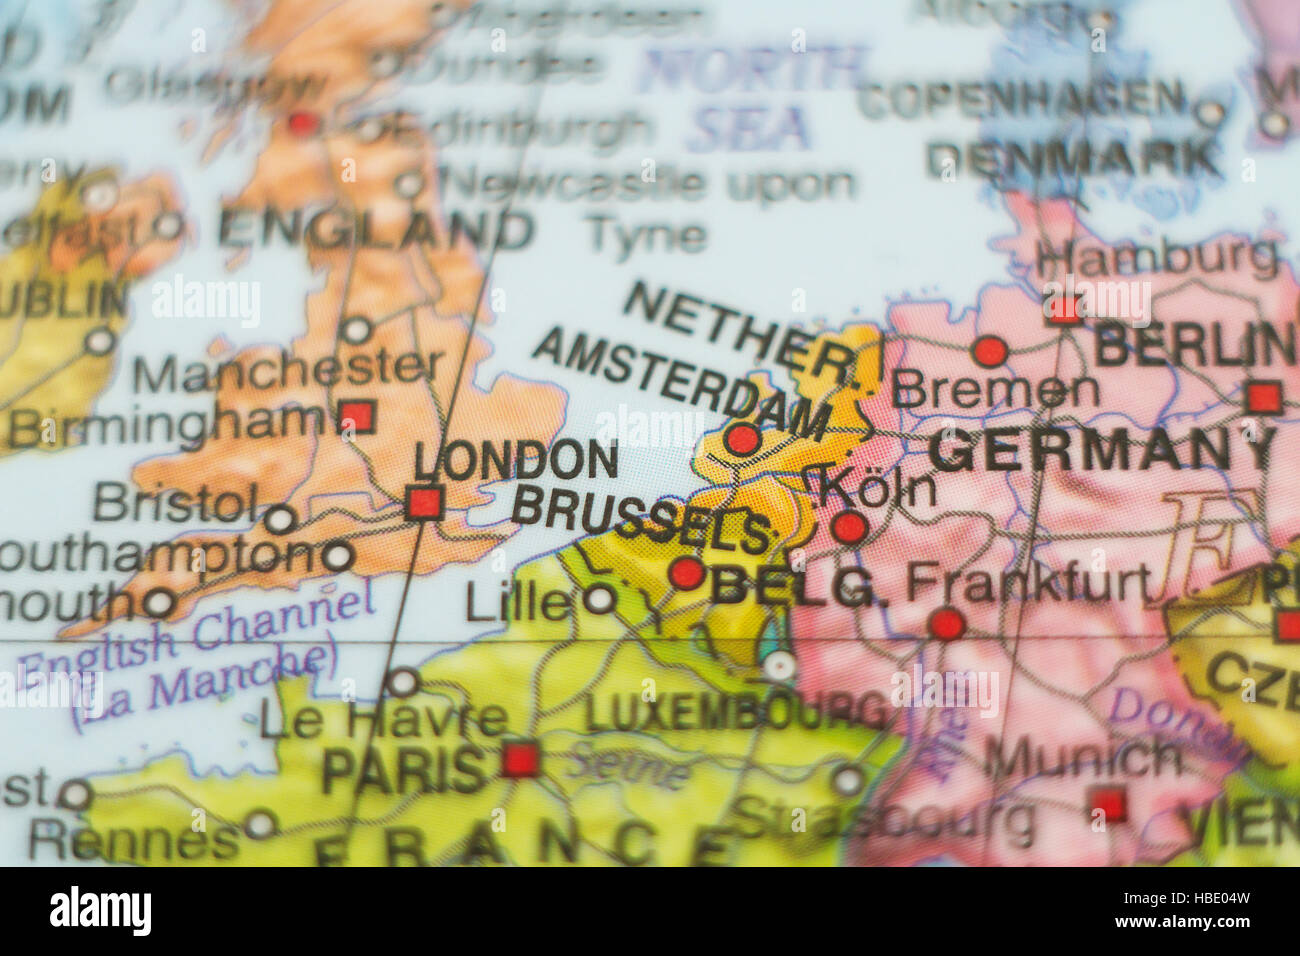 Map Of Holland And Germany.Illustration Map Germany Holland Stock Photos Illustration Map